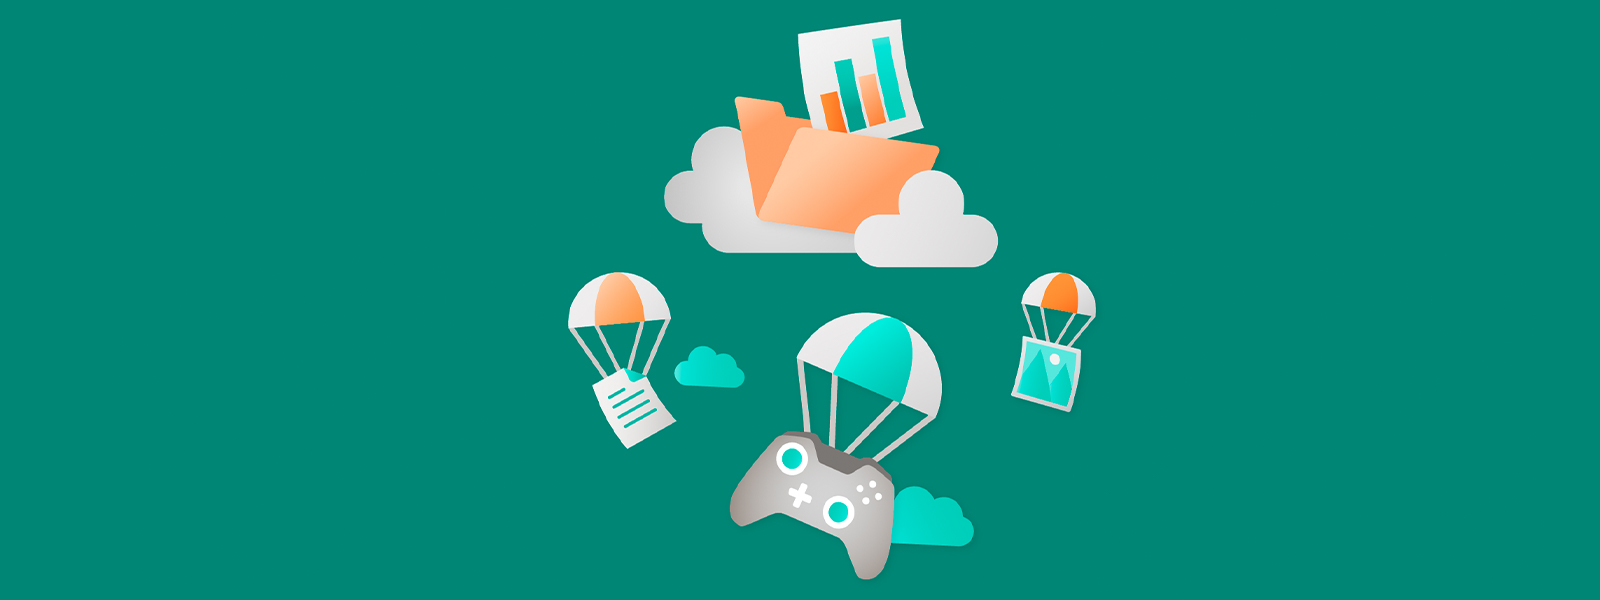 Illustration Featuring Software Icons Falling on Parachute